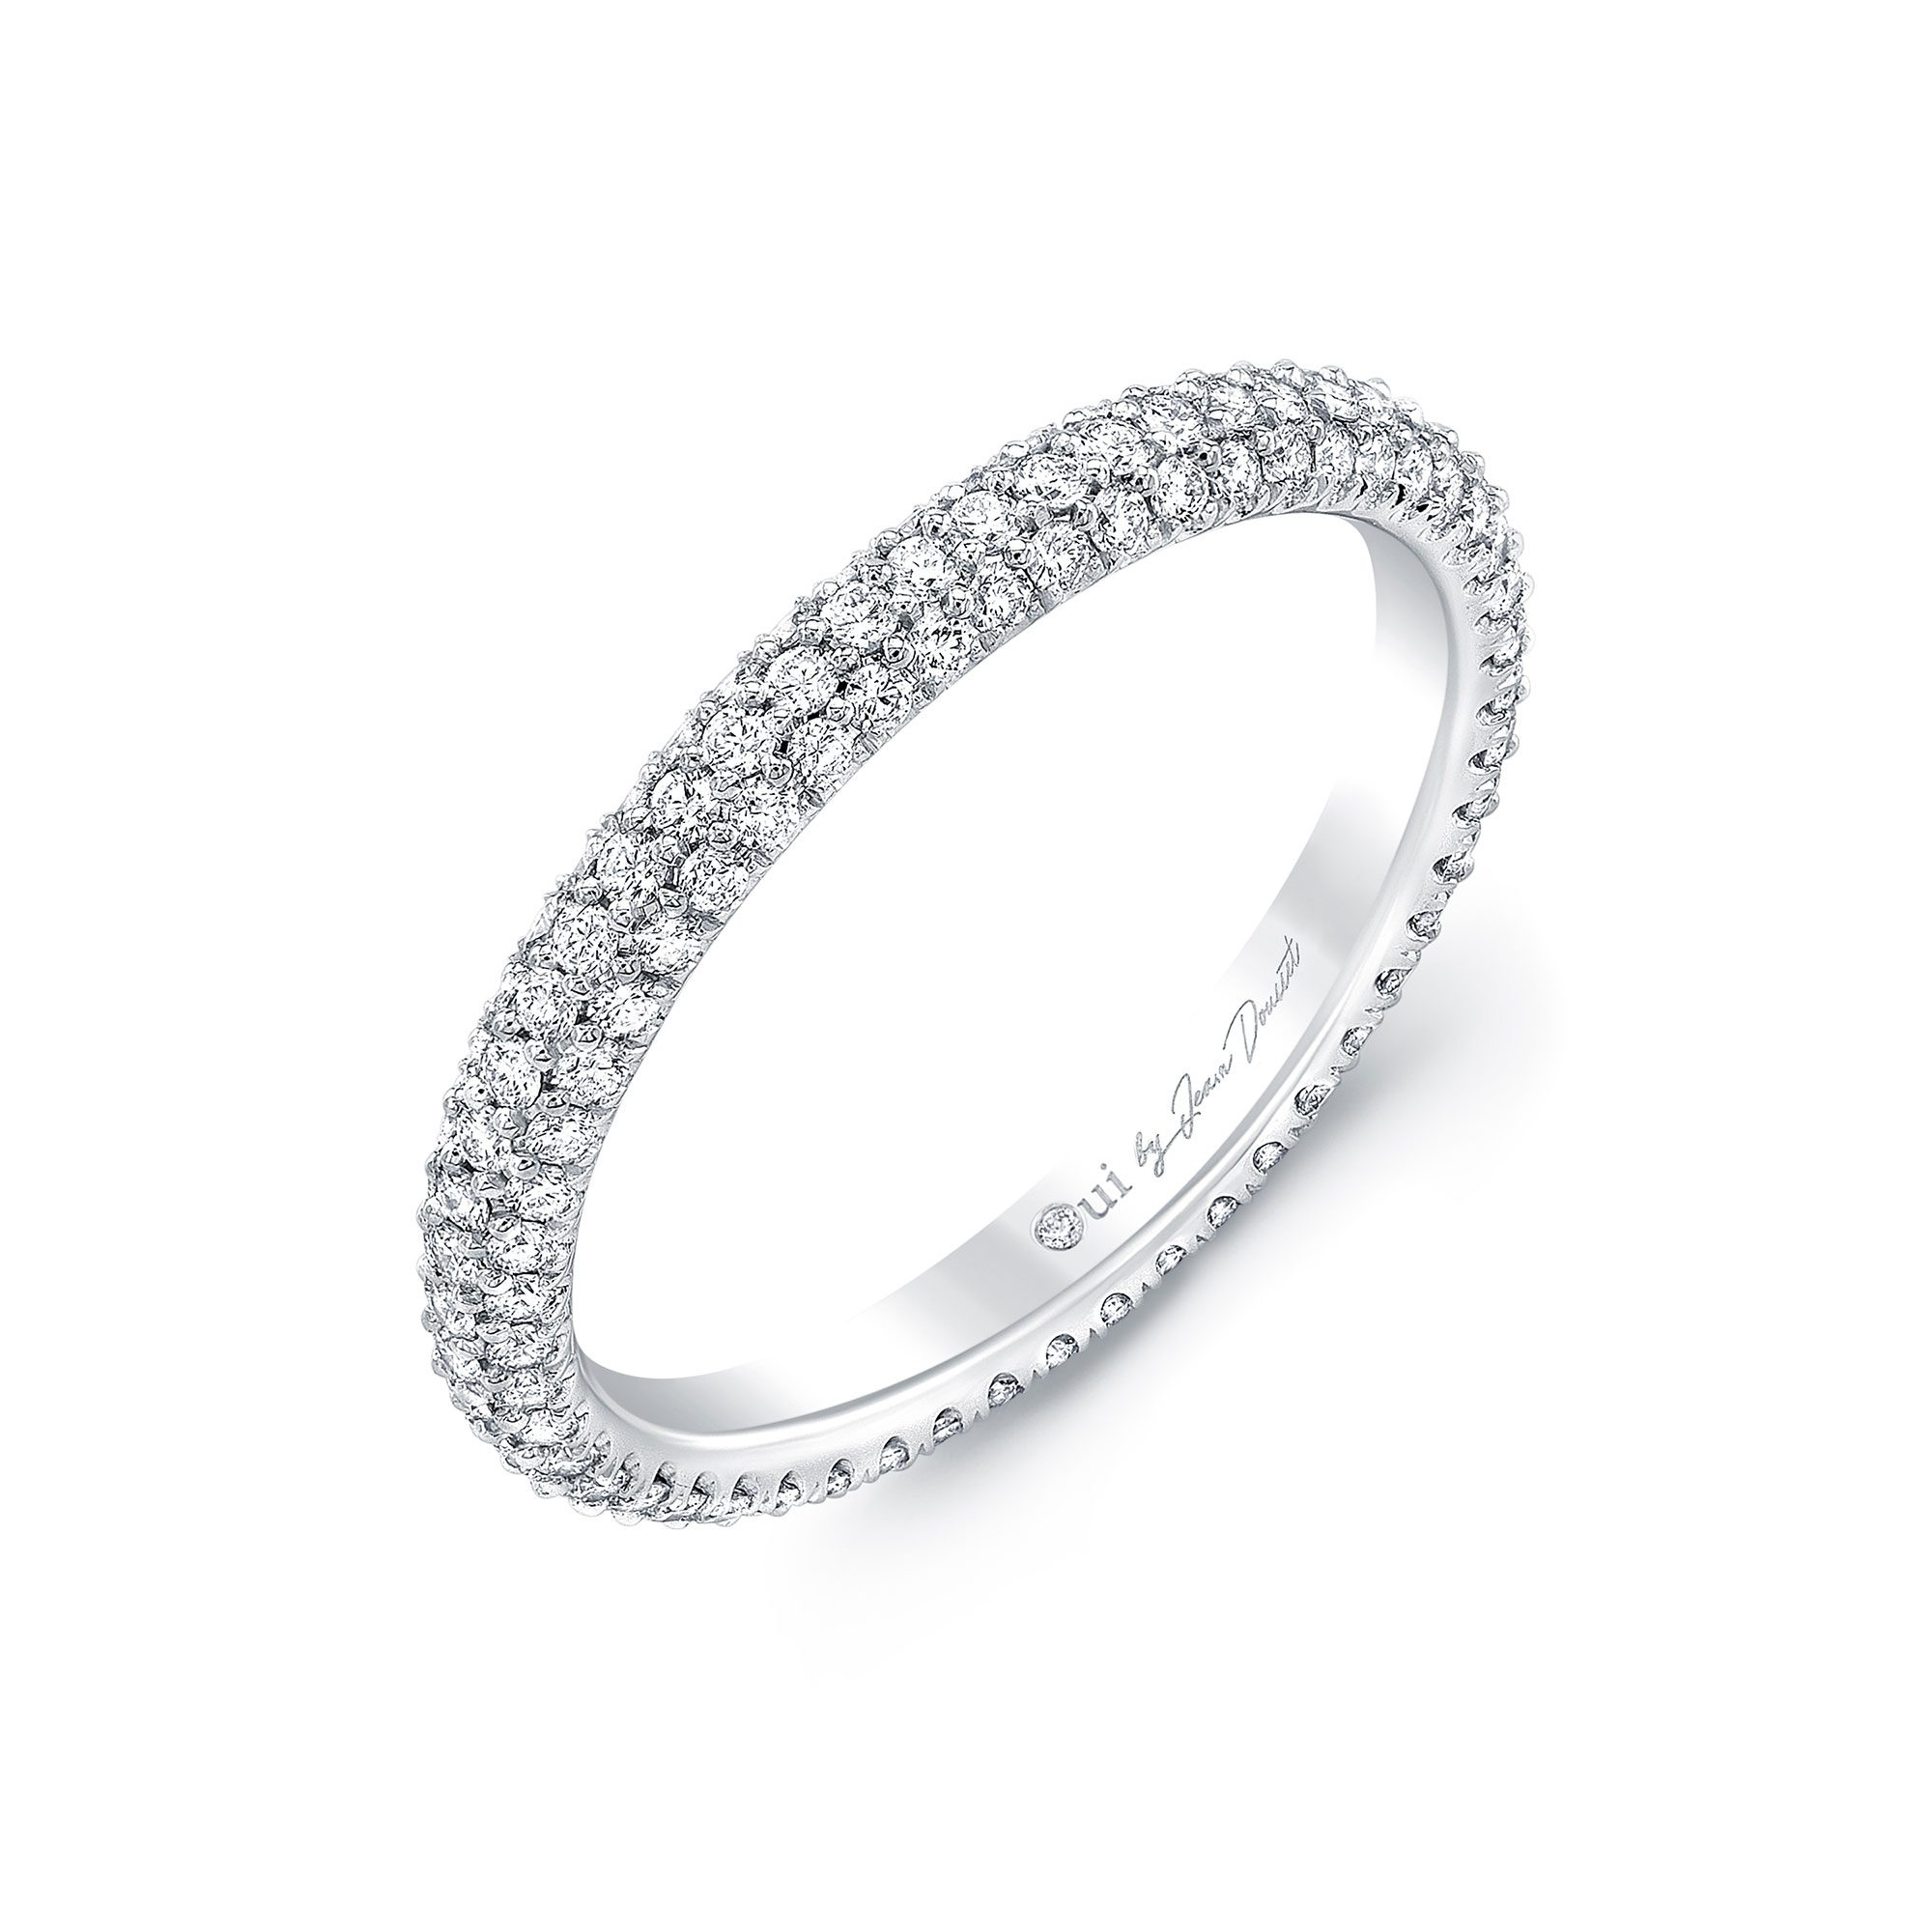 Jacqueline Eternity Band 18k White Gold Side View by Oui by Jean Dousset